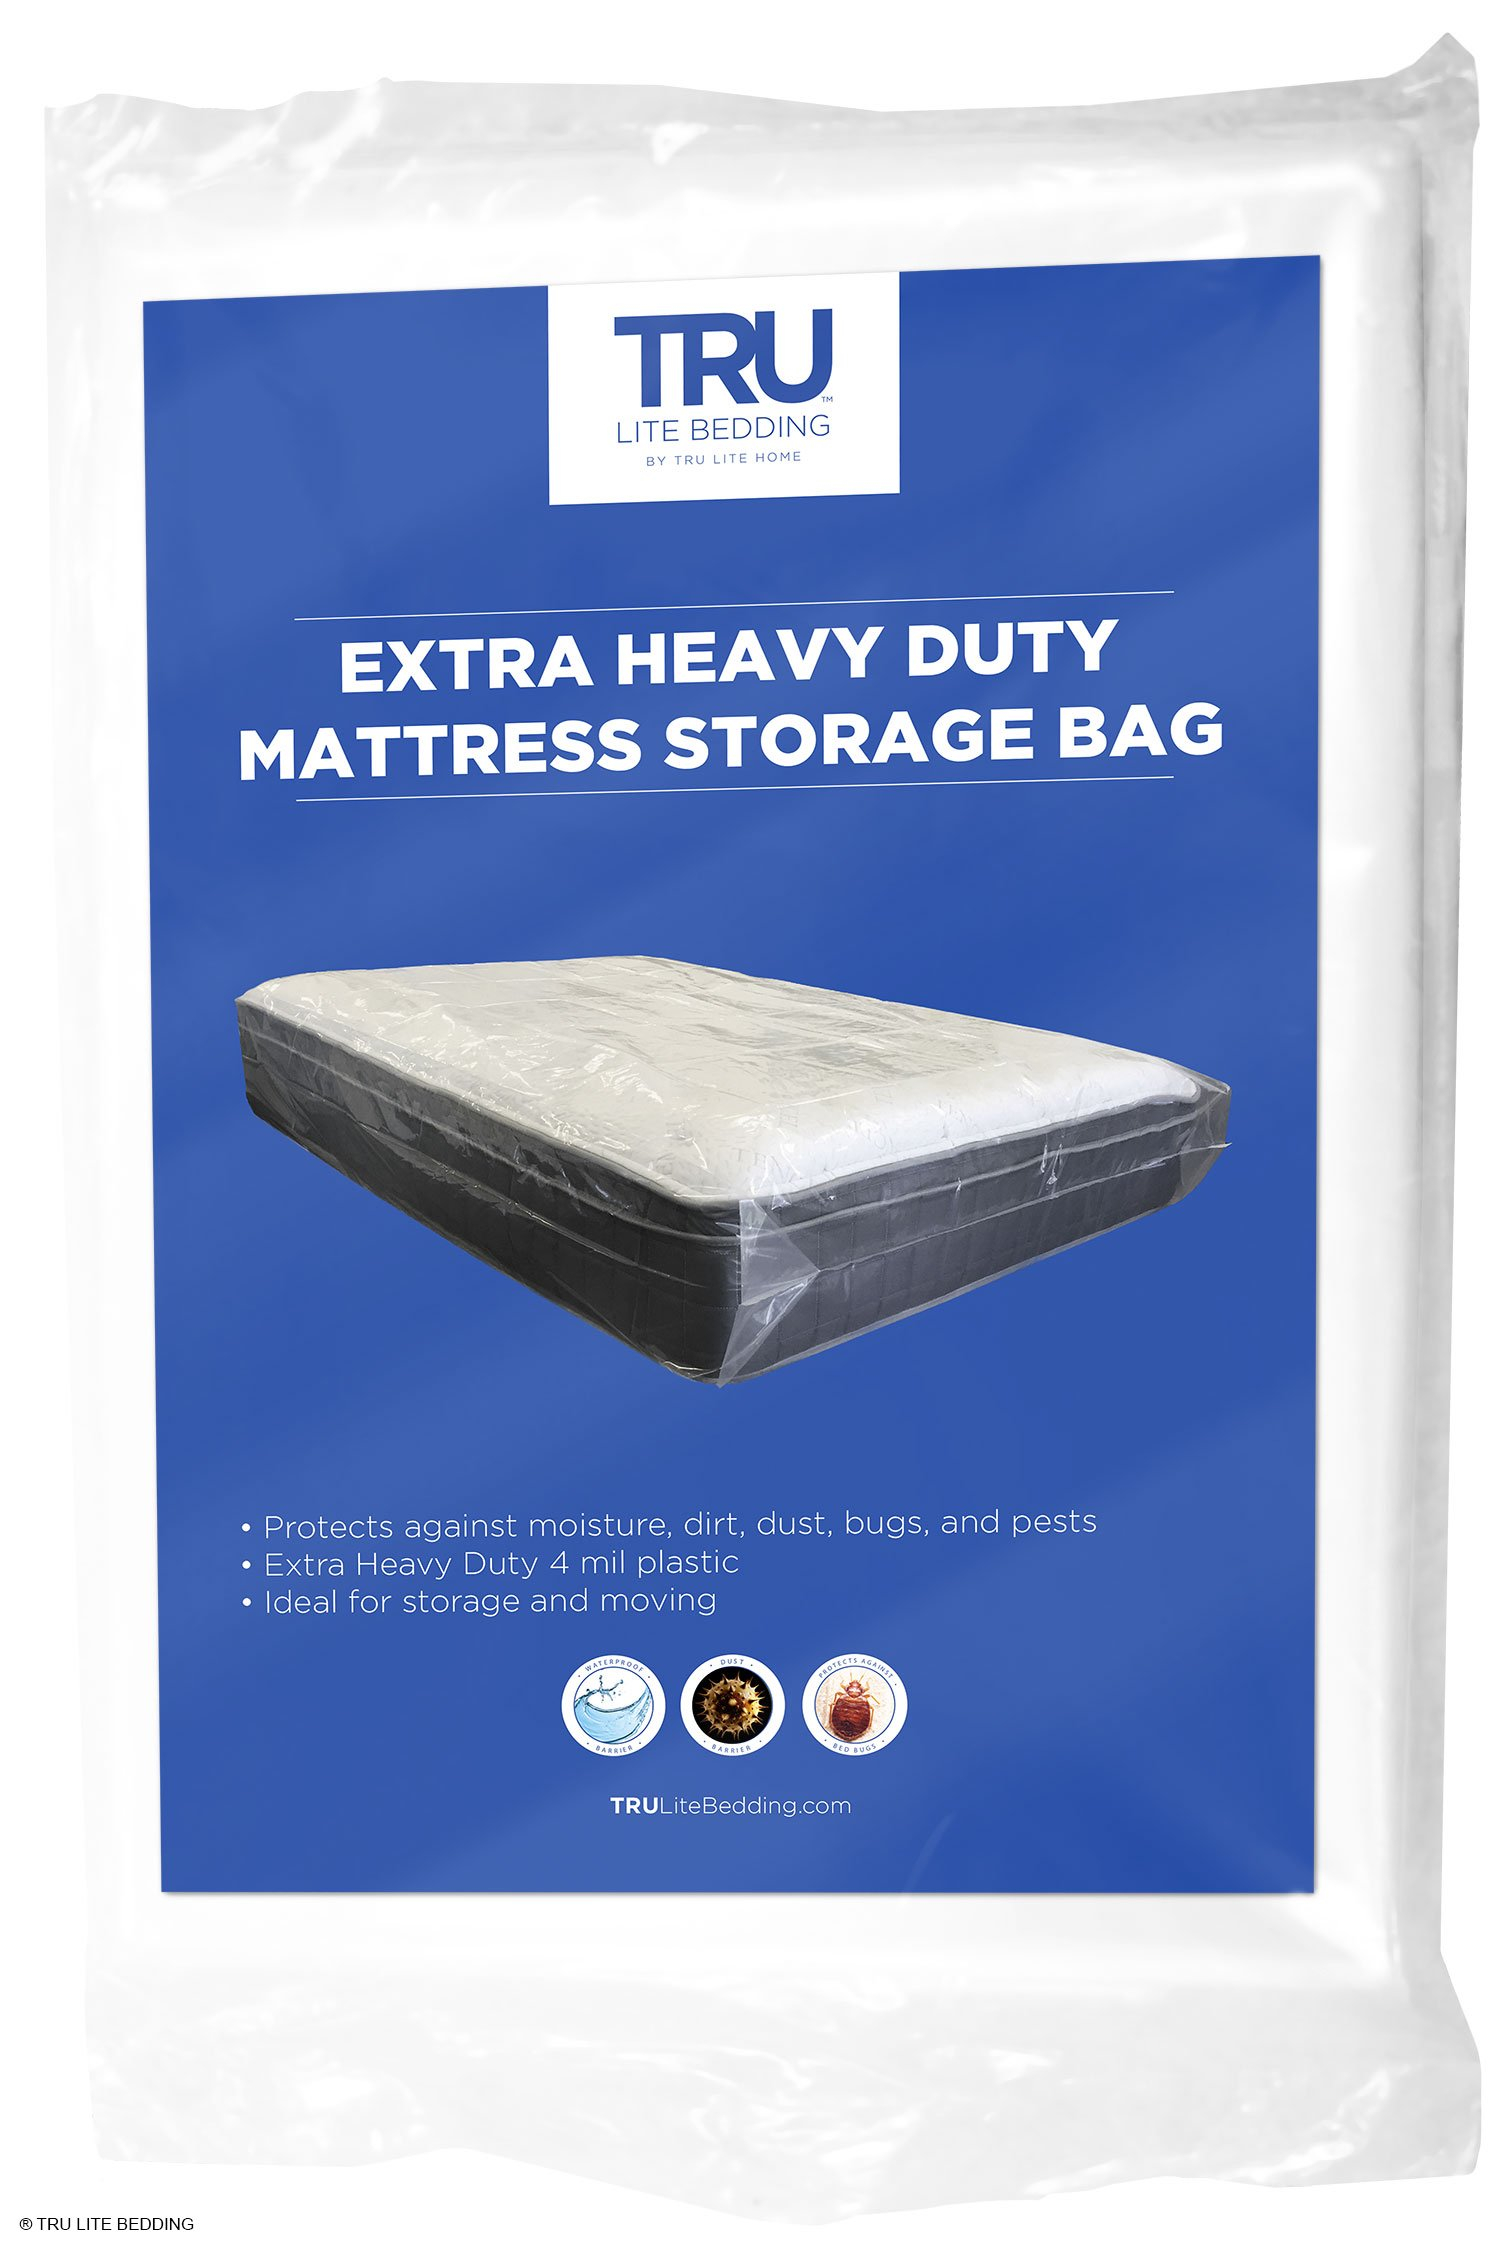 Etonnant Heavy Duty Mattress Storage Bag   Extra Thick 4 Mil   Fits Standard, Extra  Long